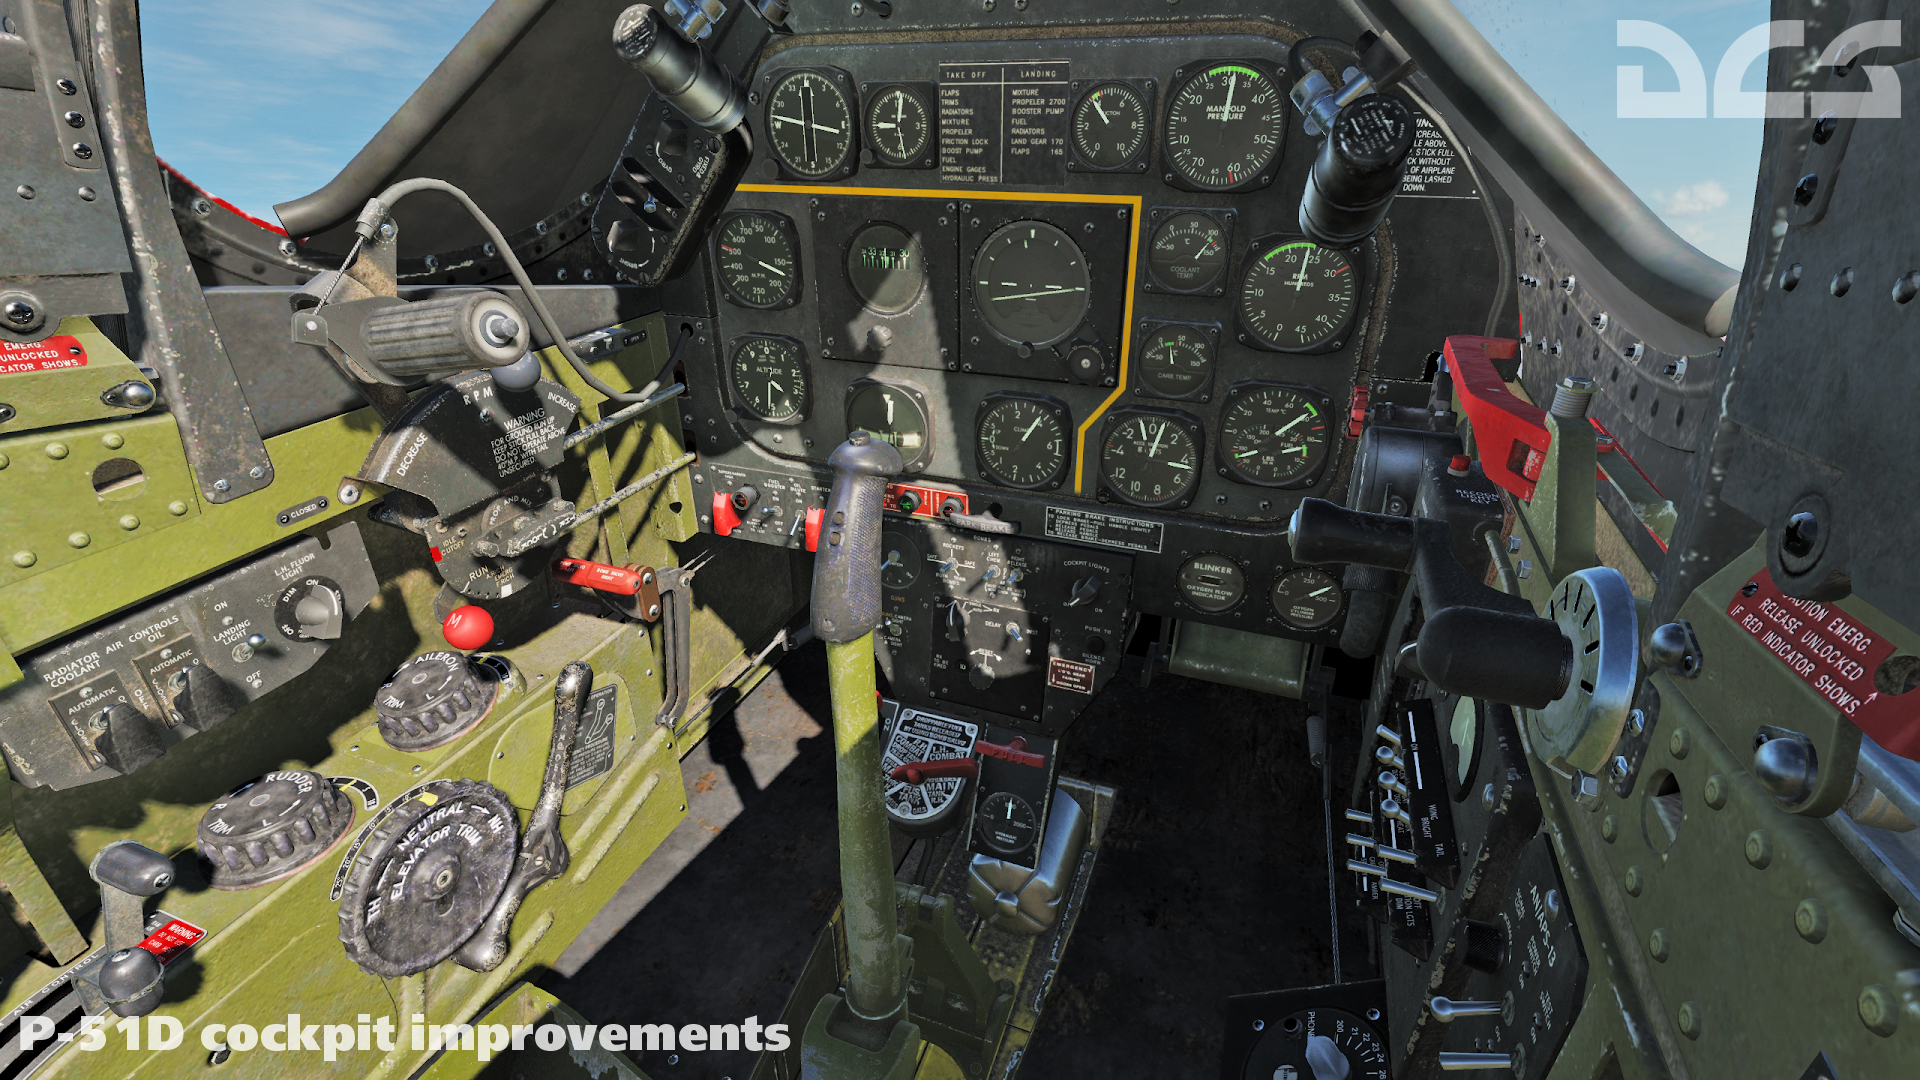 www.digitalcombatsimulator.com/upload/iblock/6f1/P-51D-cockpit-improvements-1.jpg